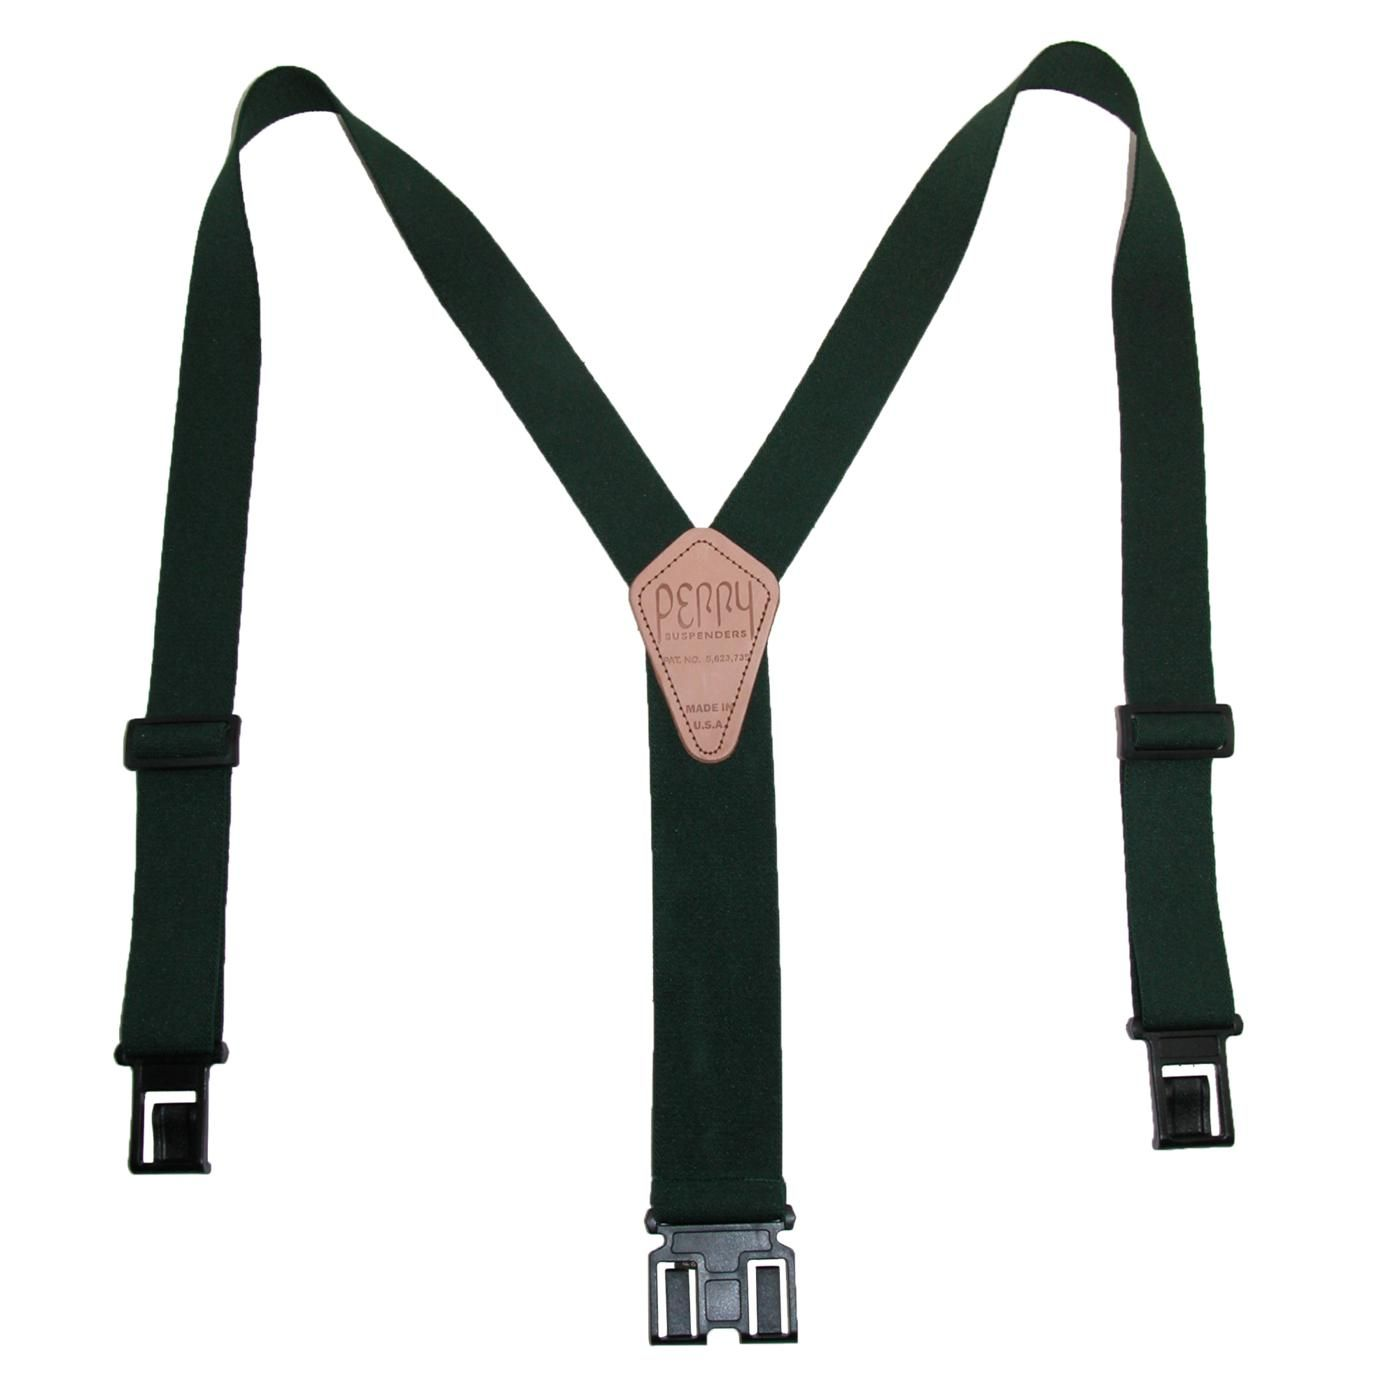 These are a great basic suspender. The 1.5 inch width gives more stability and strength and the belt clips attach easily and comfortably for a more secure fit.